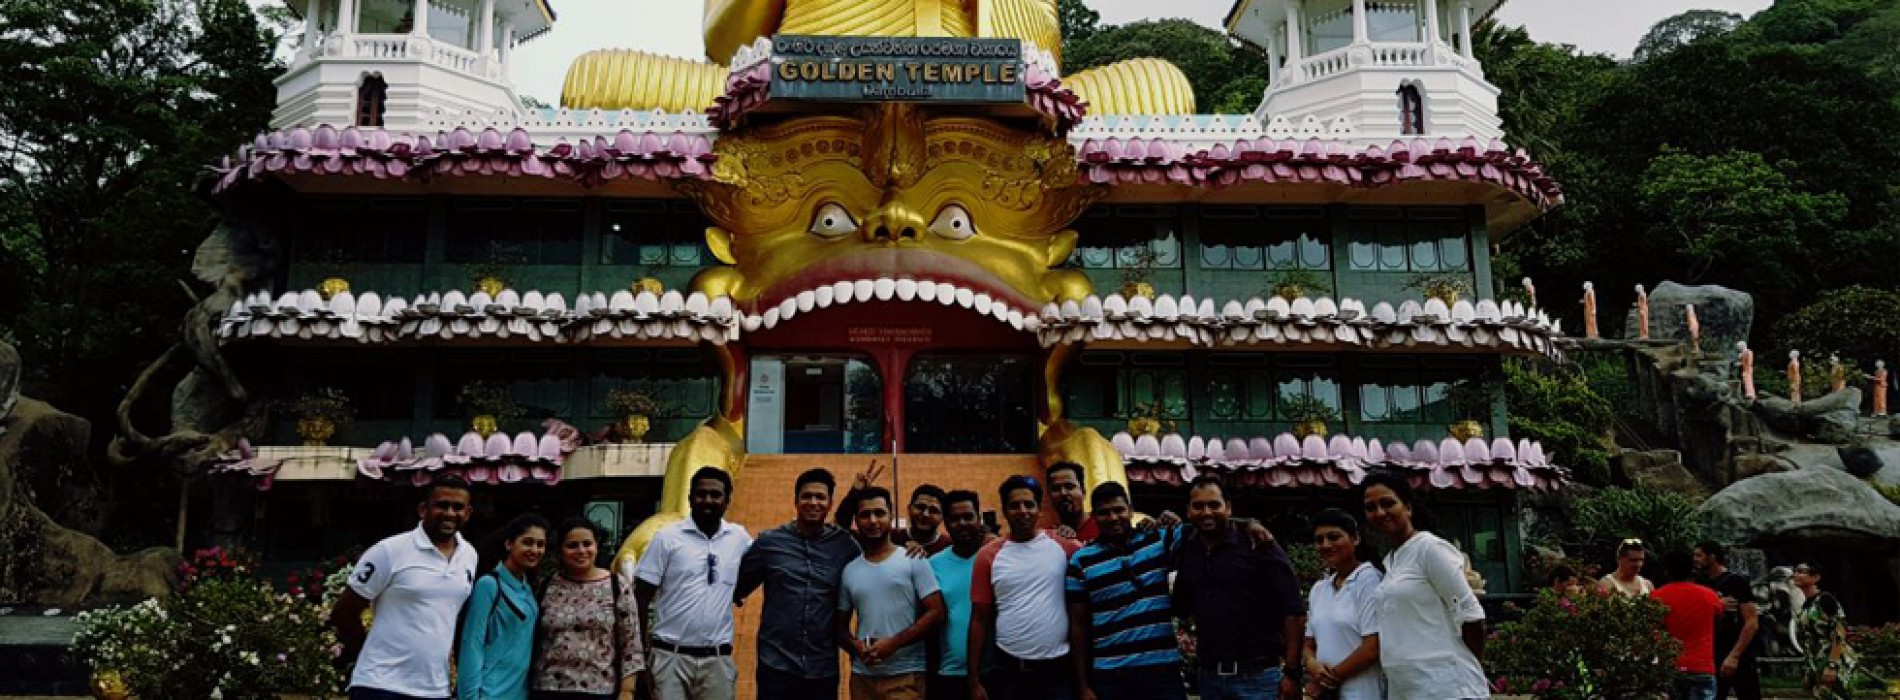 Aitken Spence Hotels, Aitken Spence Travels – Sri Lanka and Sri Lankan Airlines conducts FAM tour for leading Indian Travel Agents